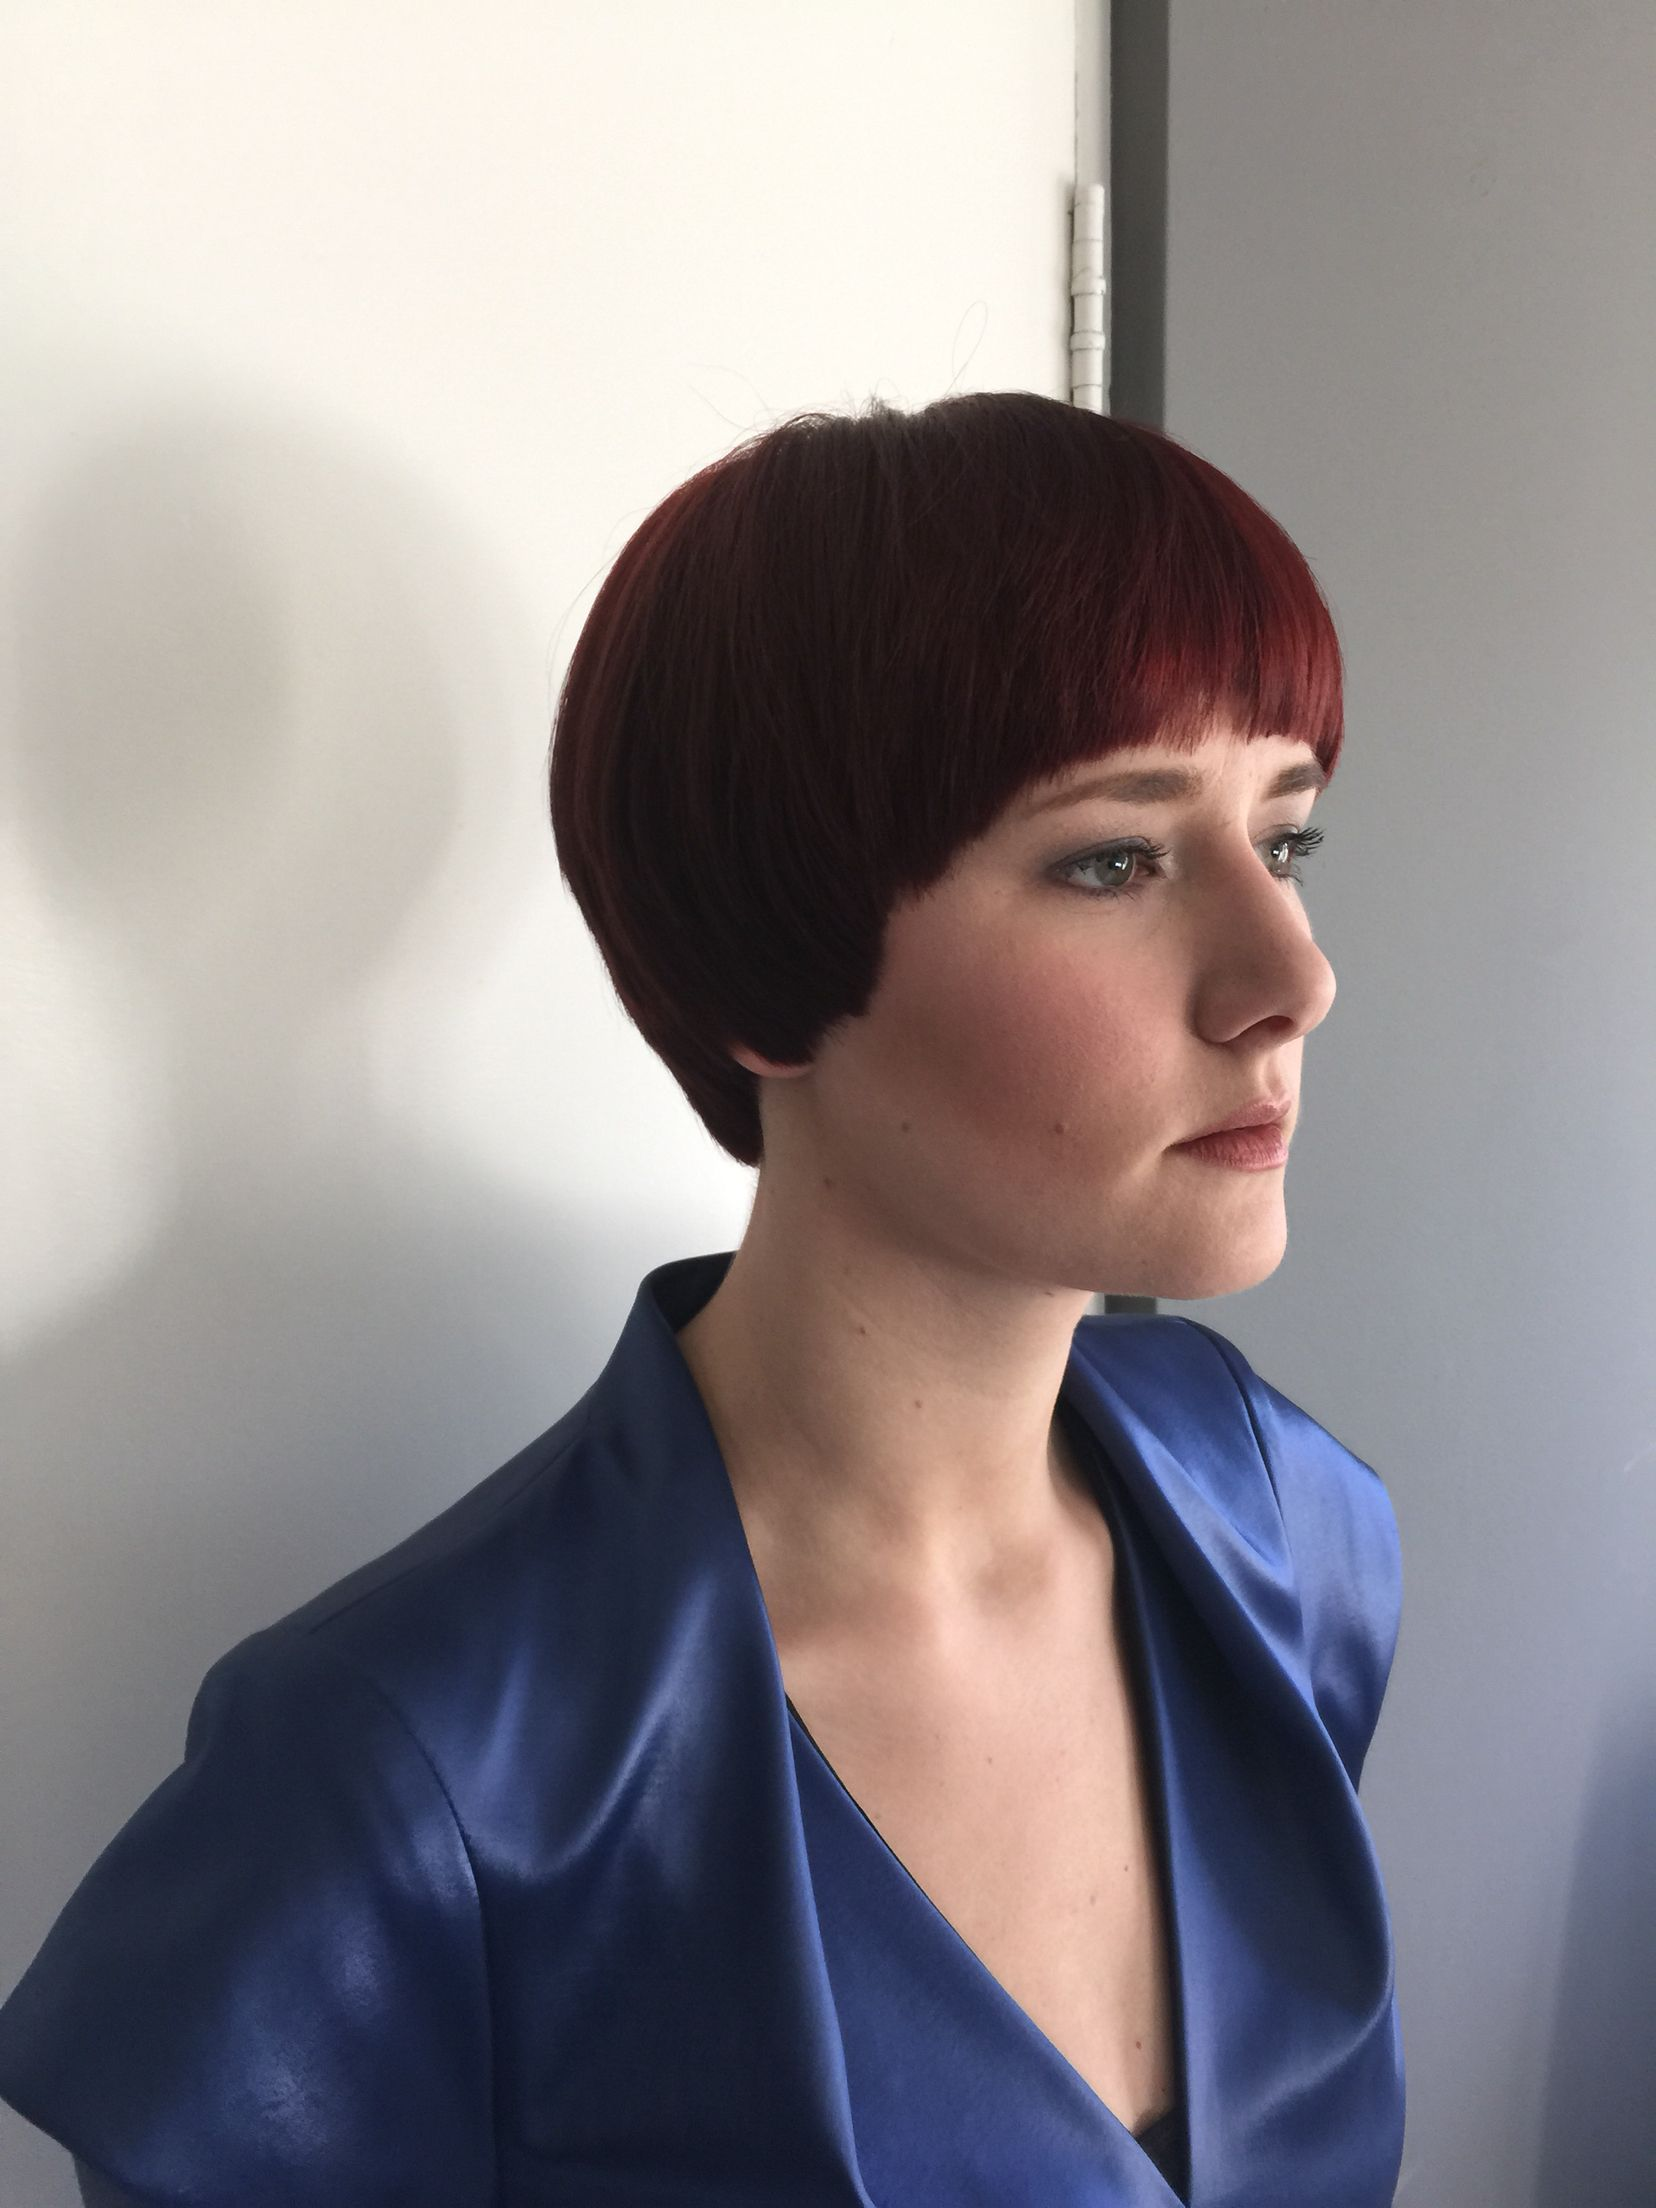 Haircut u colour by peter mulder luxe doetinchem my own work